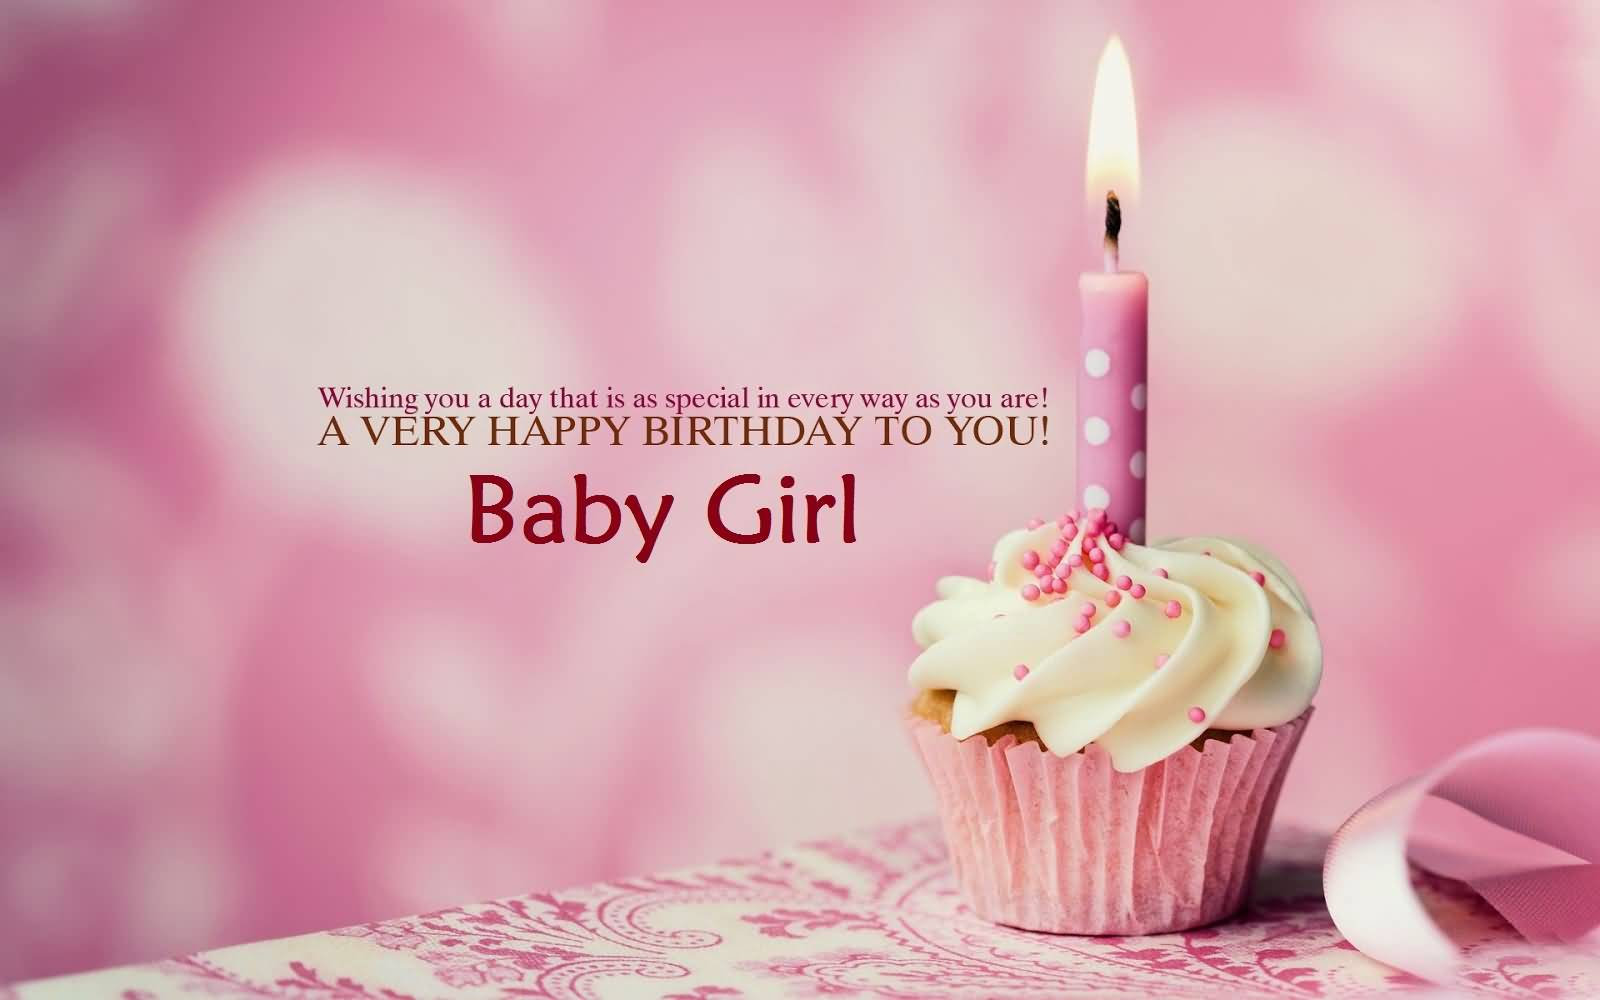 37 Sweet Baby Girl Birthday Greetings Cards, Wishes ...